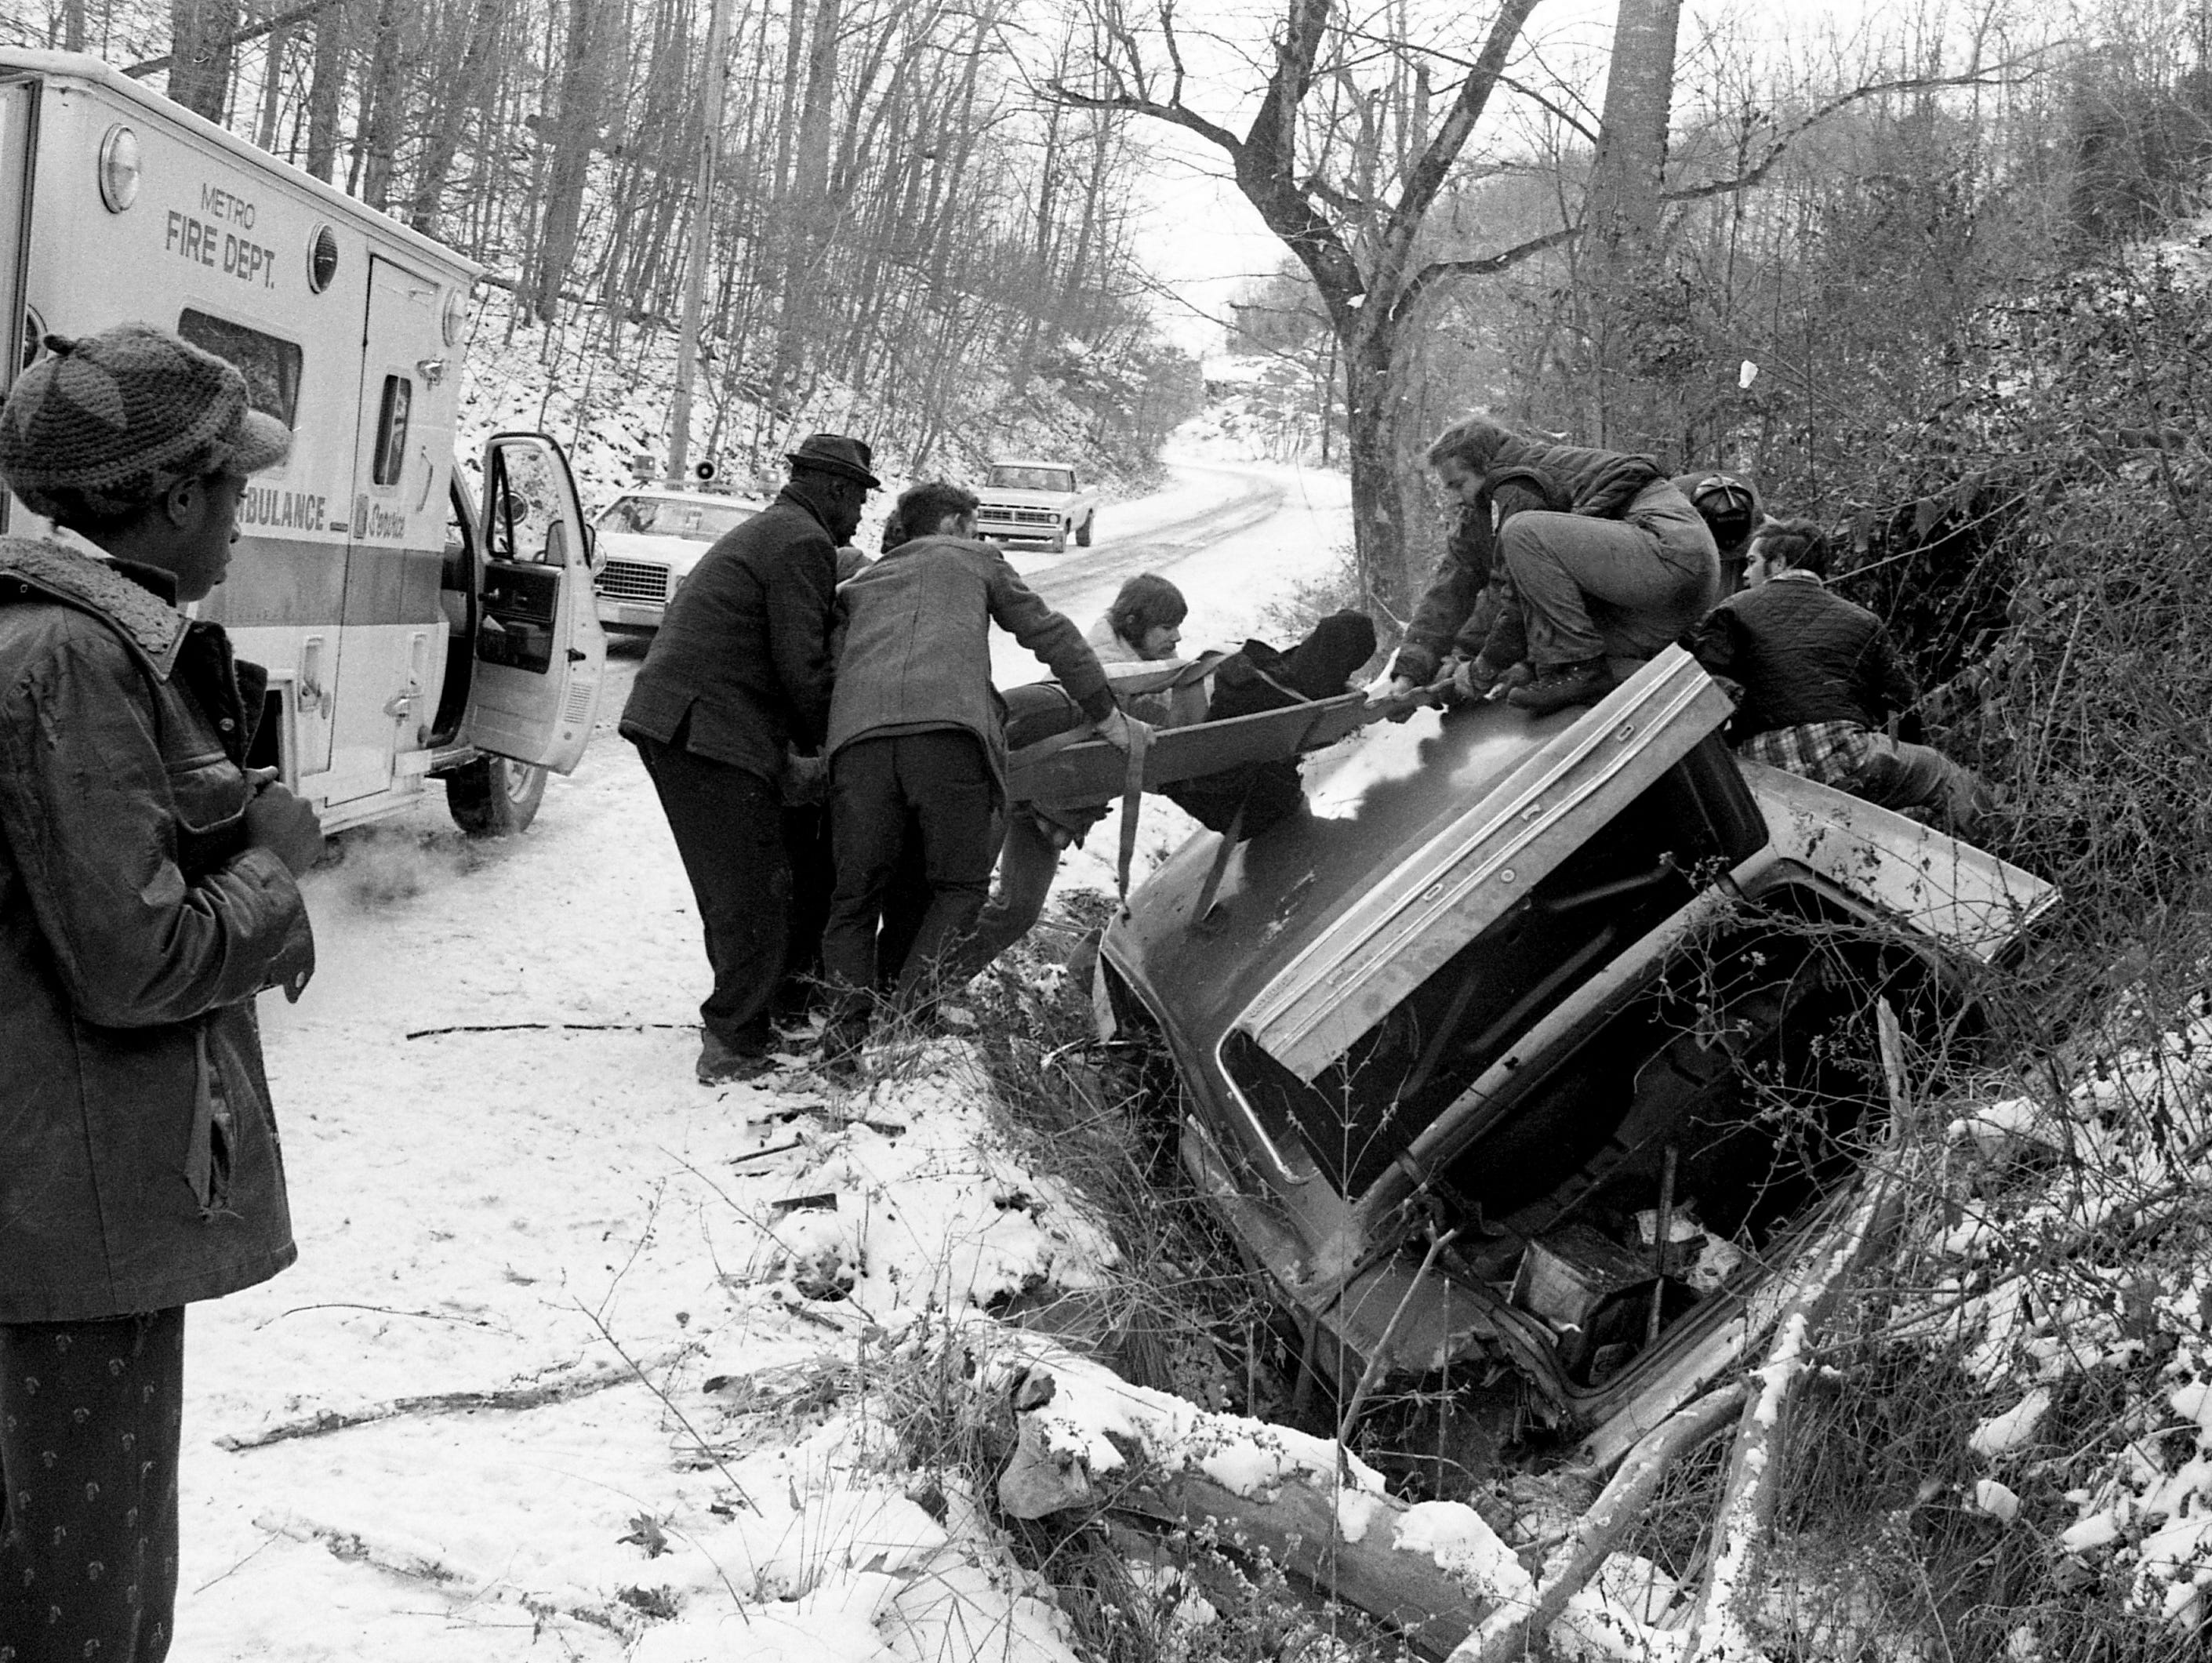 Take a look back at Nashville history with a gallery revisiting a record-setting winter storm in January 1977. TheNashville low temperature of 0 degrees broke the previous record to 2 degrees set in 1928.